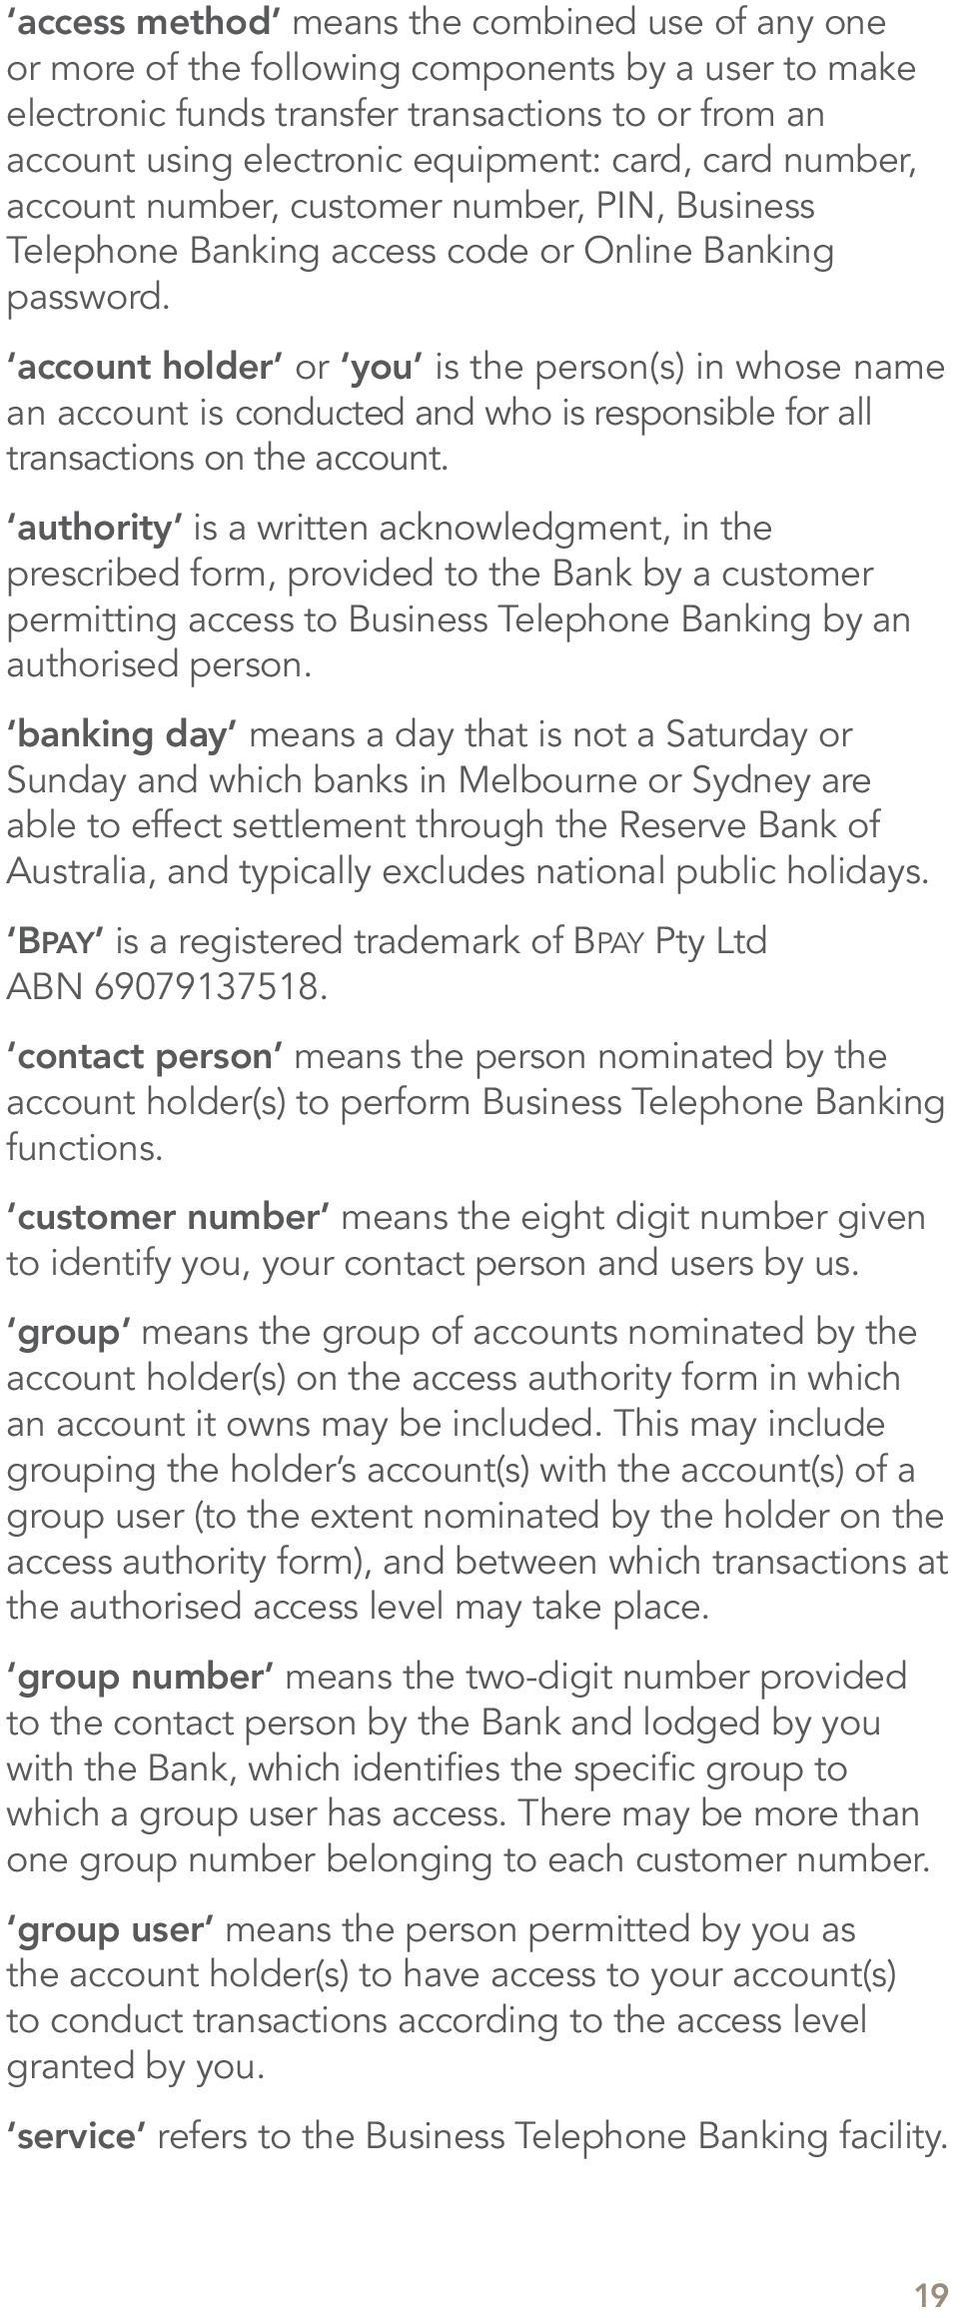 account holder or you is the person(s) in whose name an account is conducted and who is responsible for all transactions on the account.